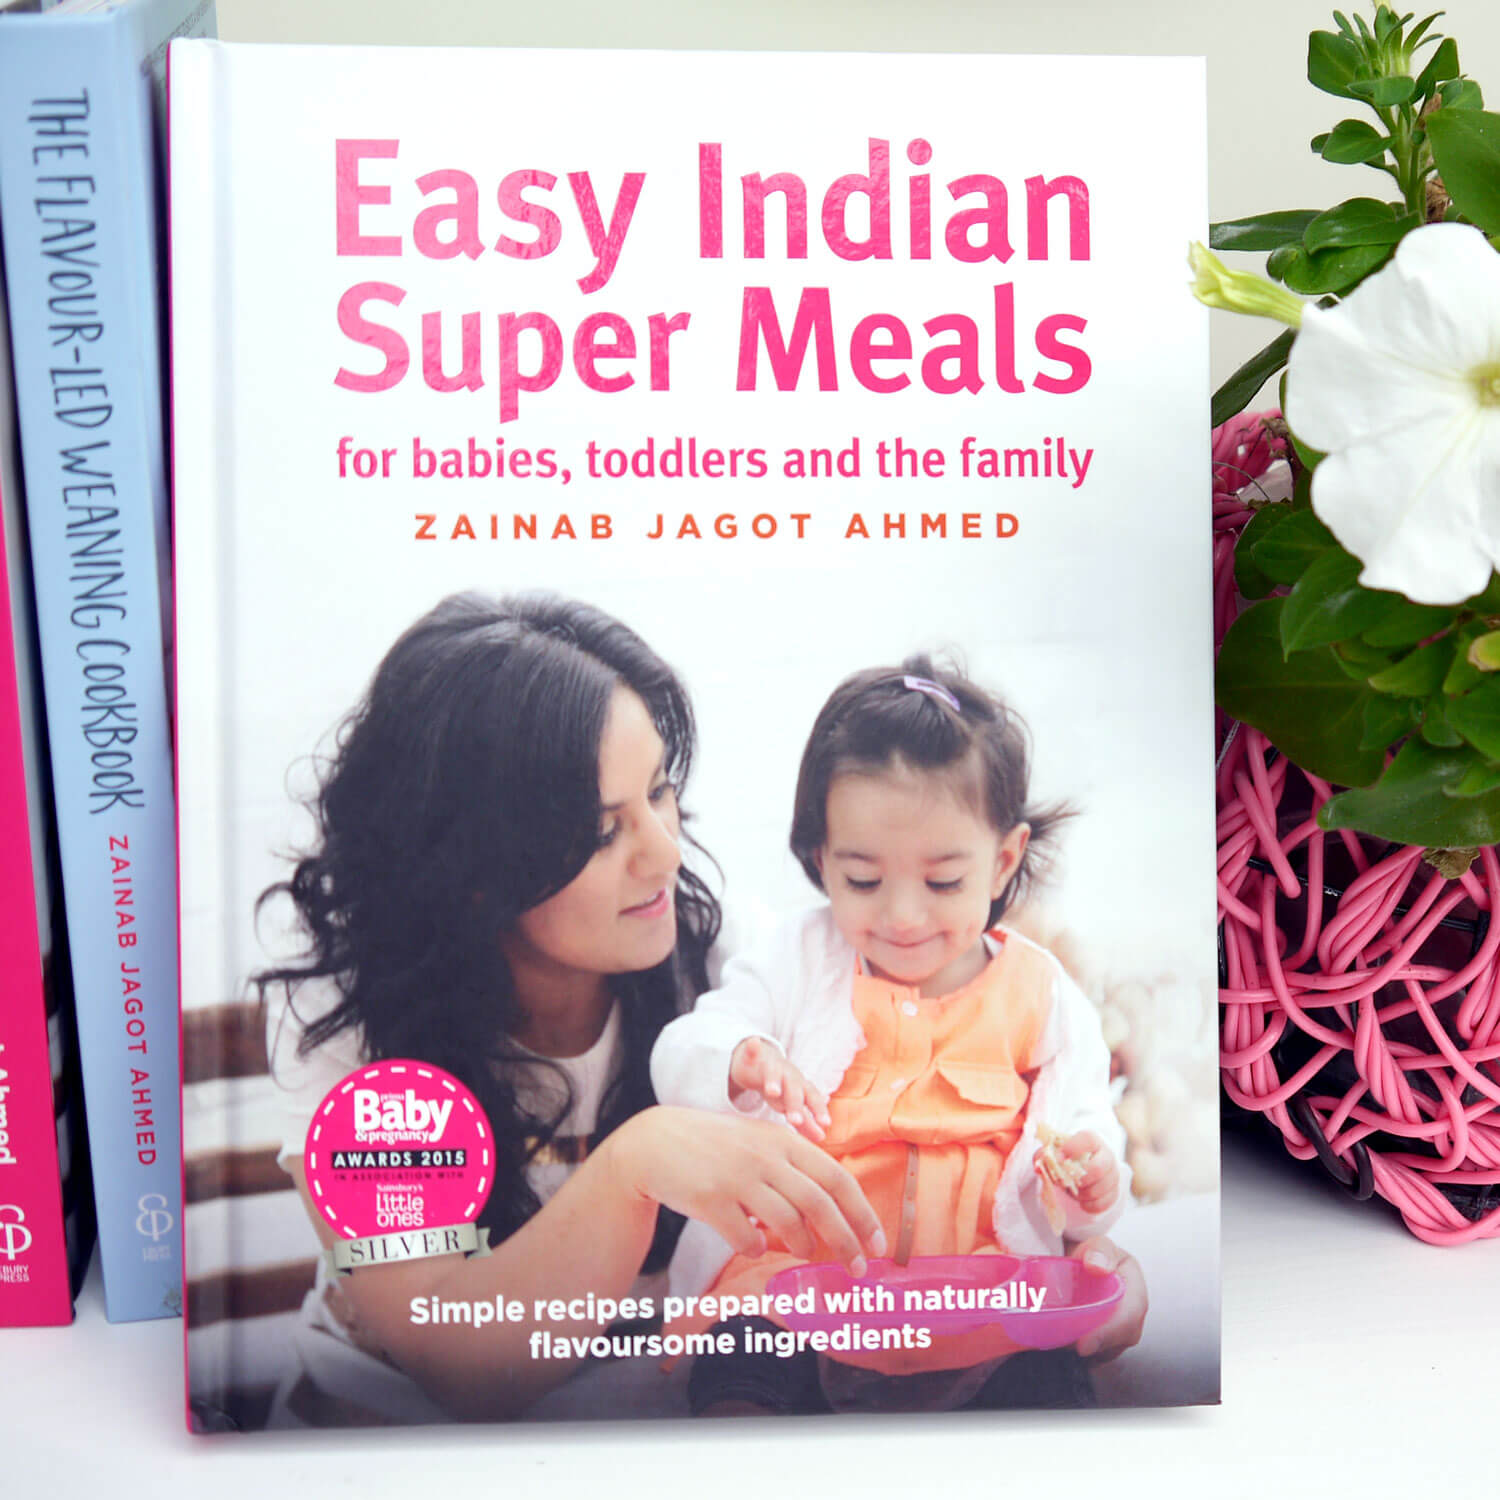 zainab_mybooks_easy-indian-super-meals.jpg